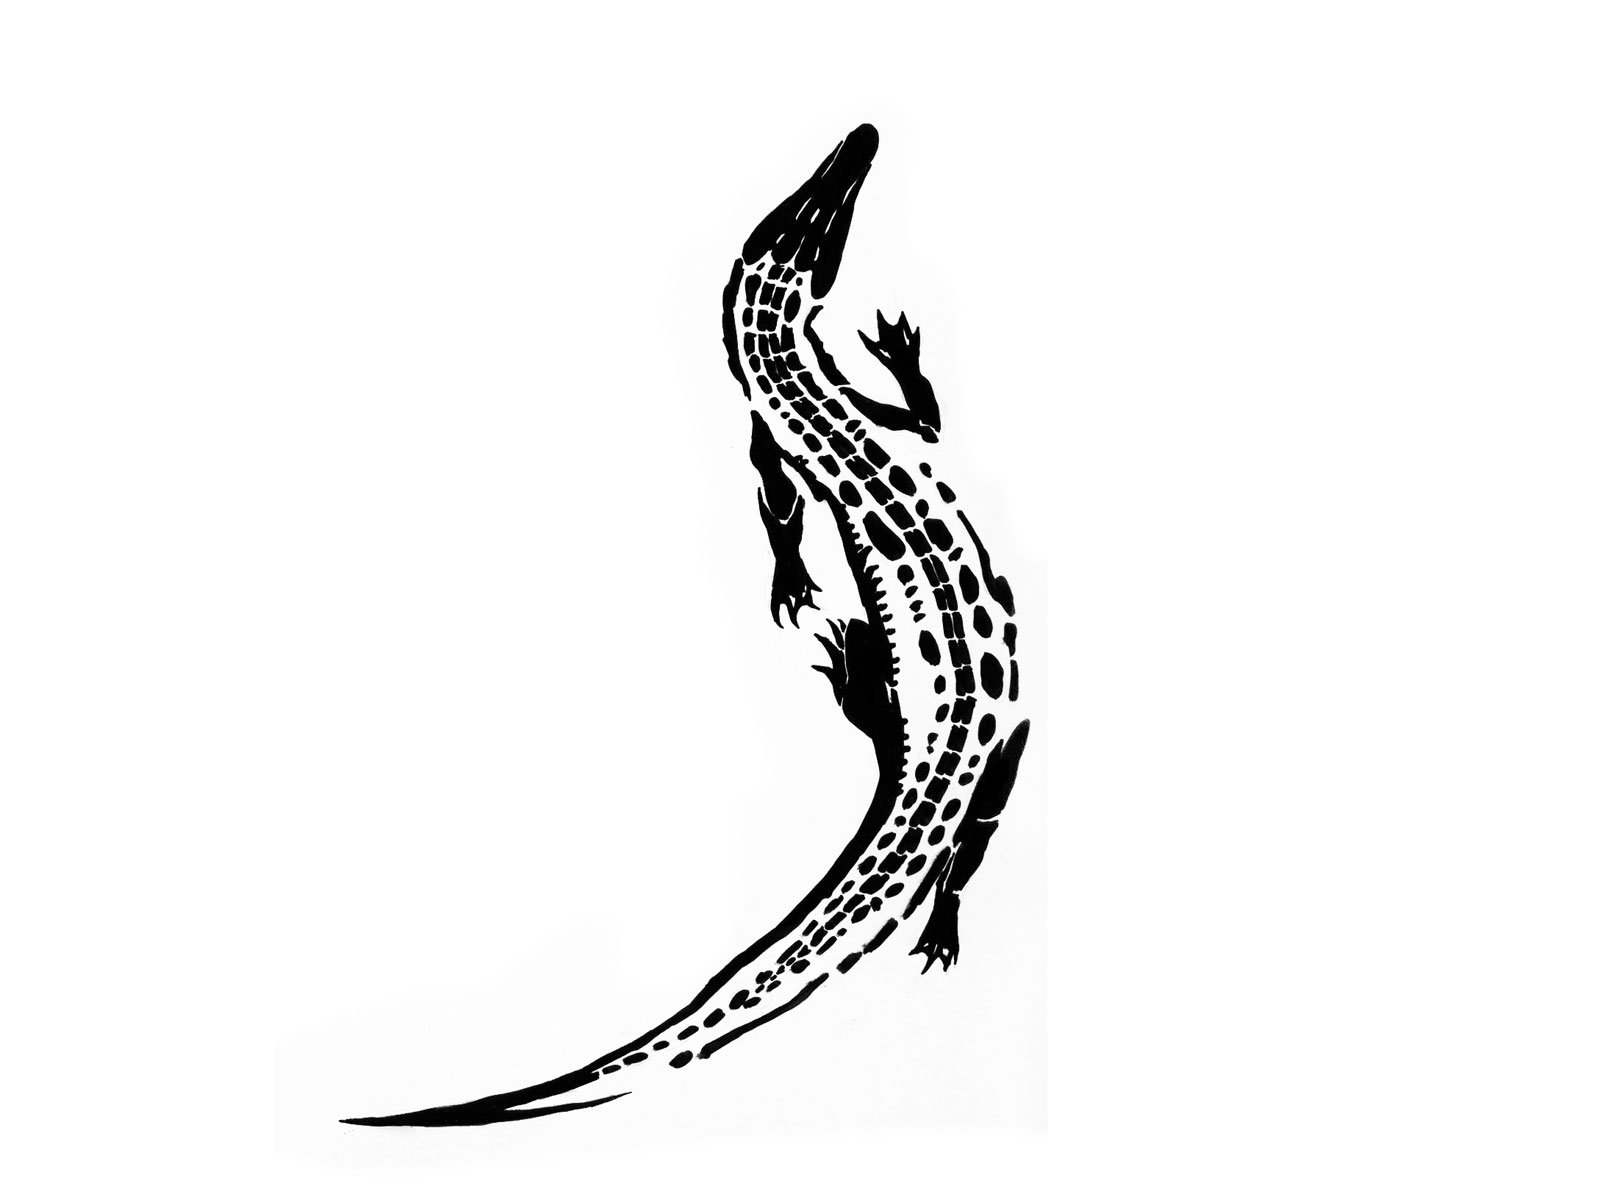 9c2148314 Slim Type Of Crocodile Tattoo - Tattoo Design Ideas